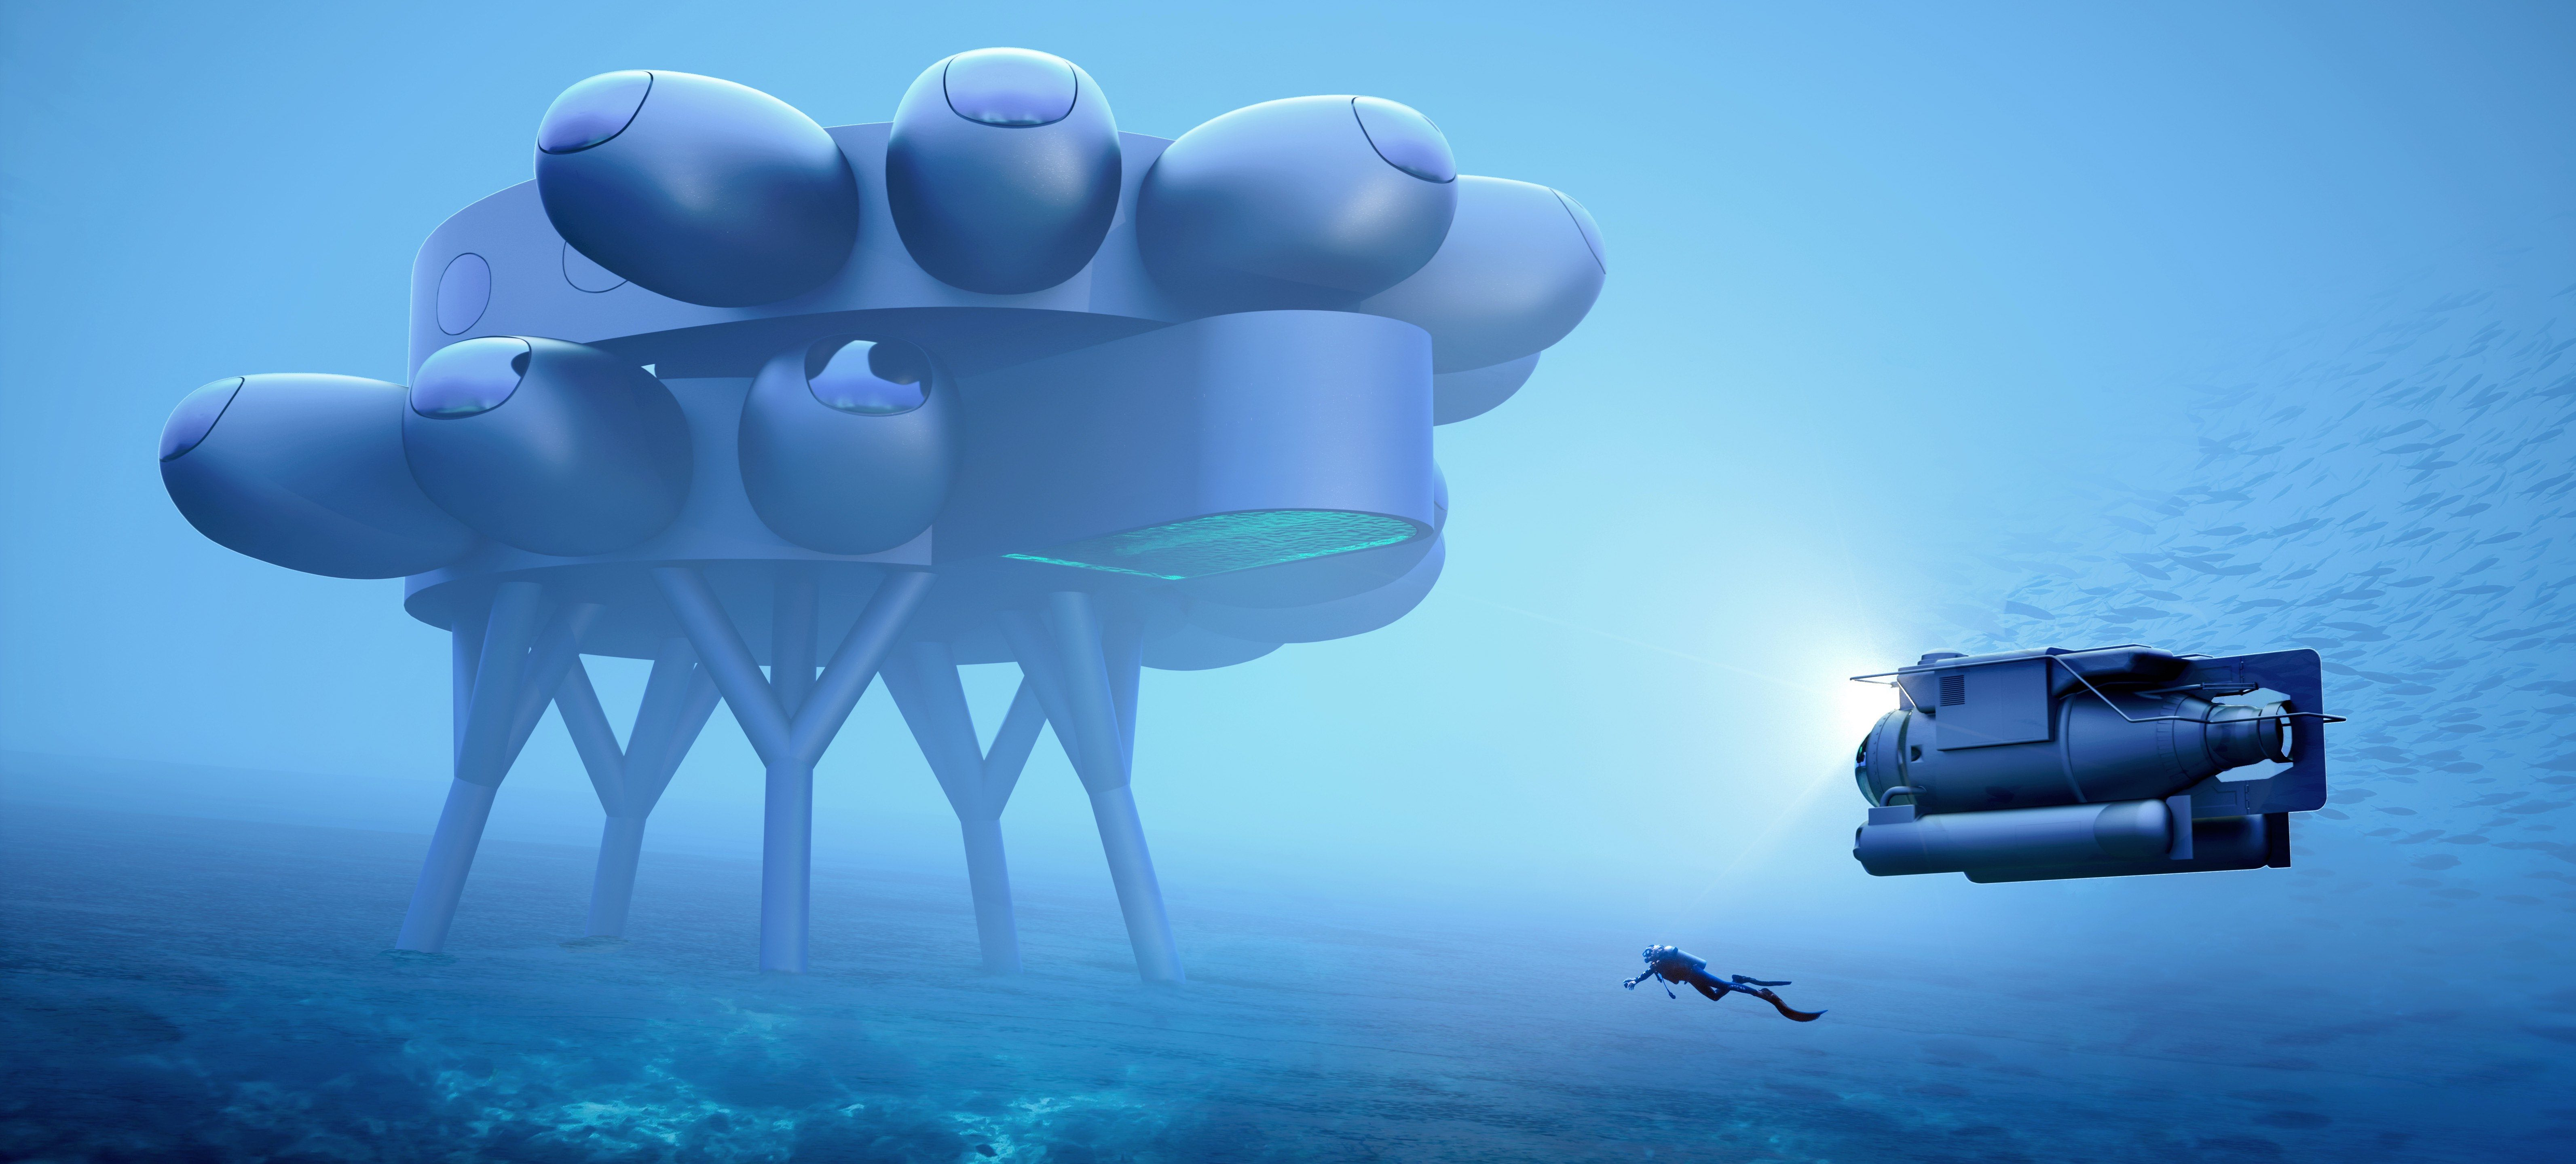 Proteus Underwater Station, created by Fabien Cousteau and Yves Béhar